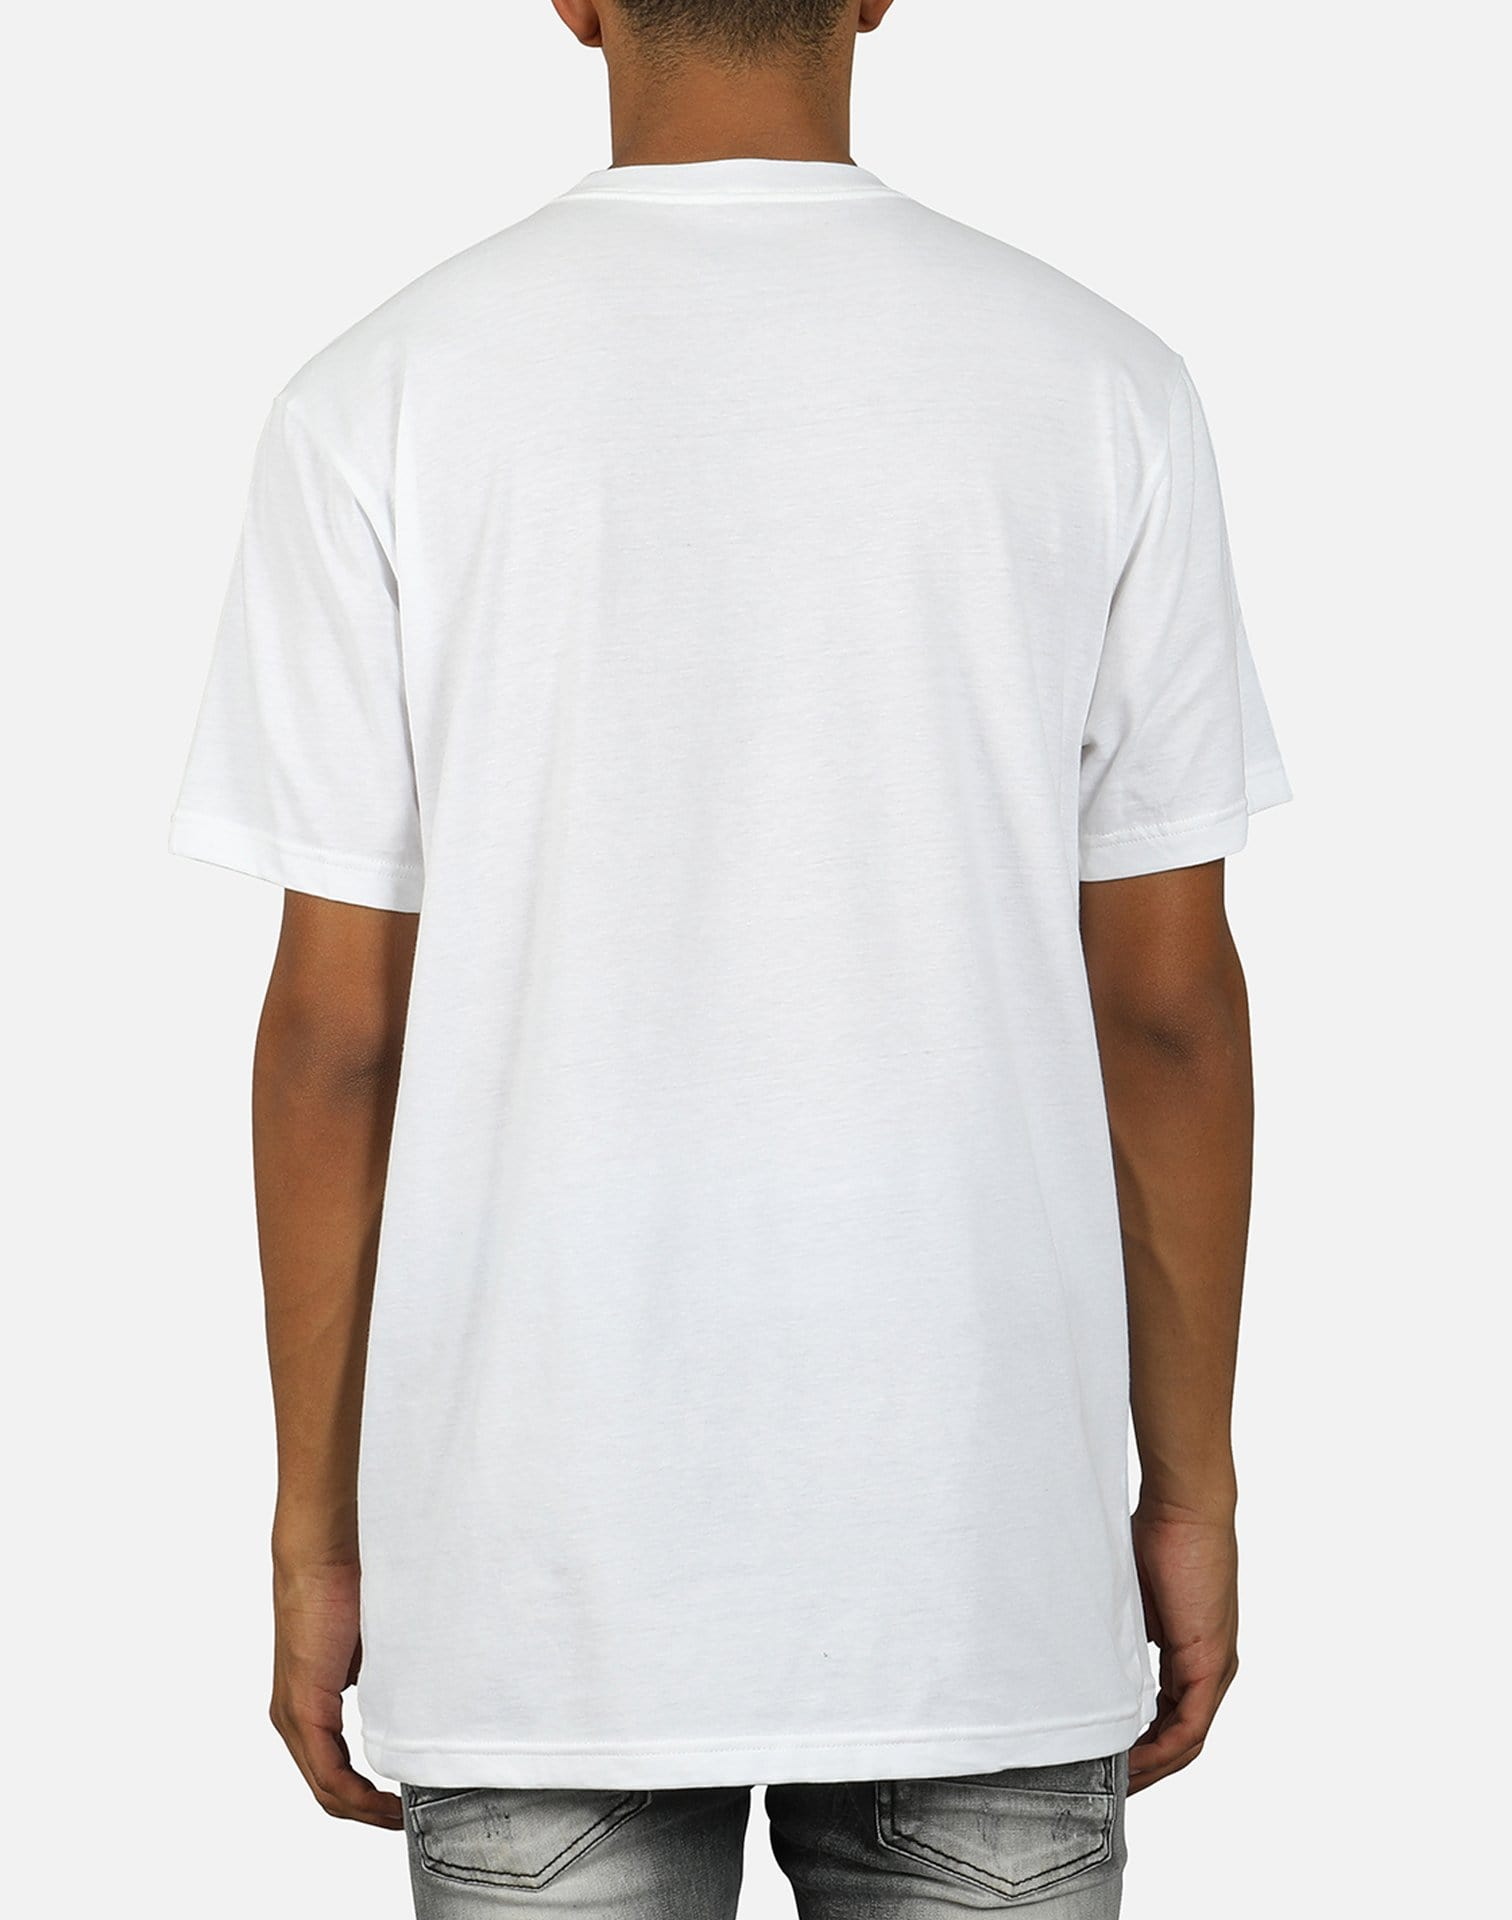 The North Face Men's Edge to Edge Tee